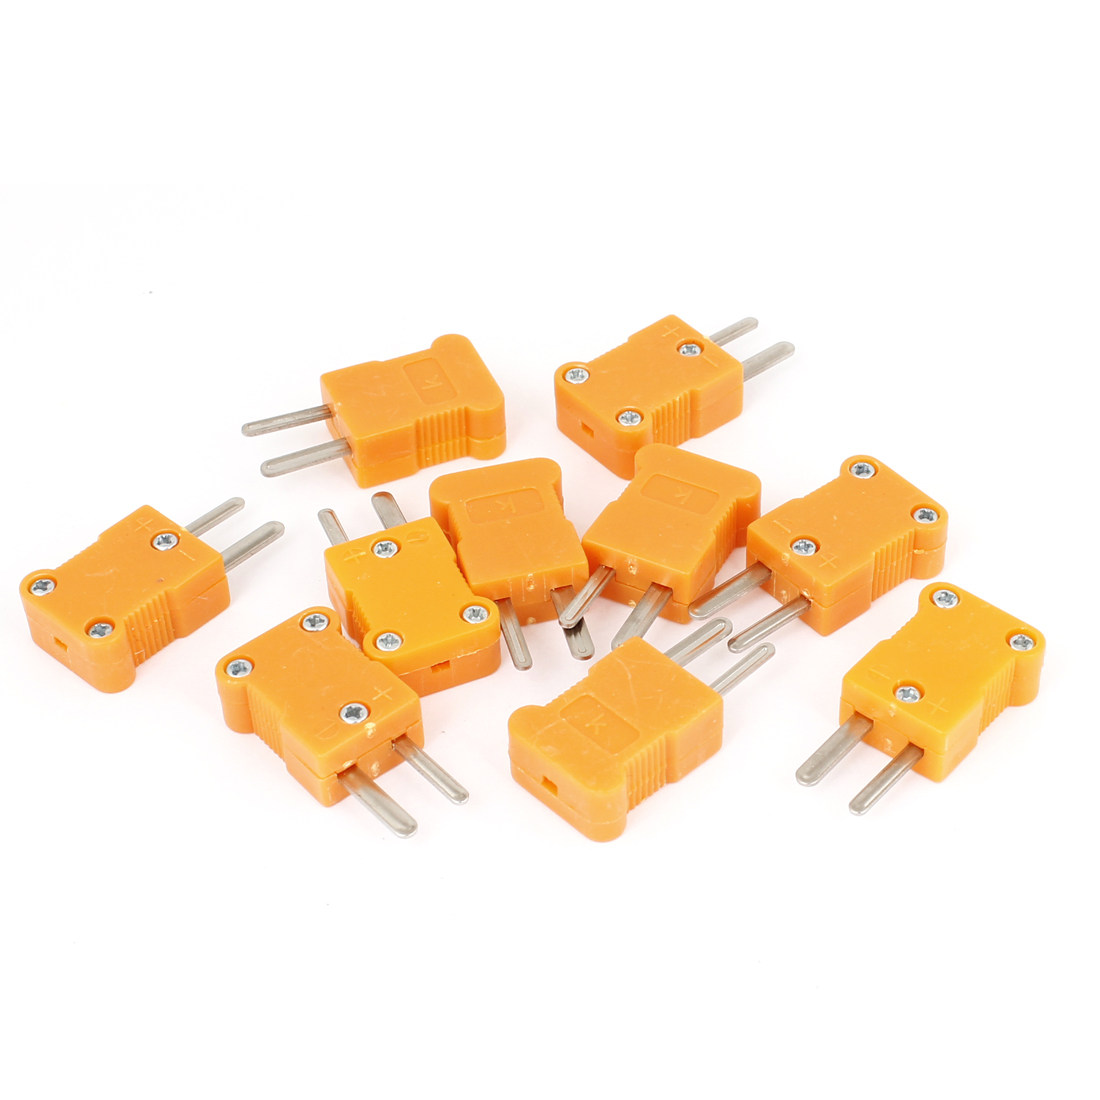 10 Pcs Spare Part K Style Male Thermocouple Sensor Plug Orange